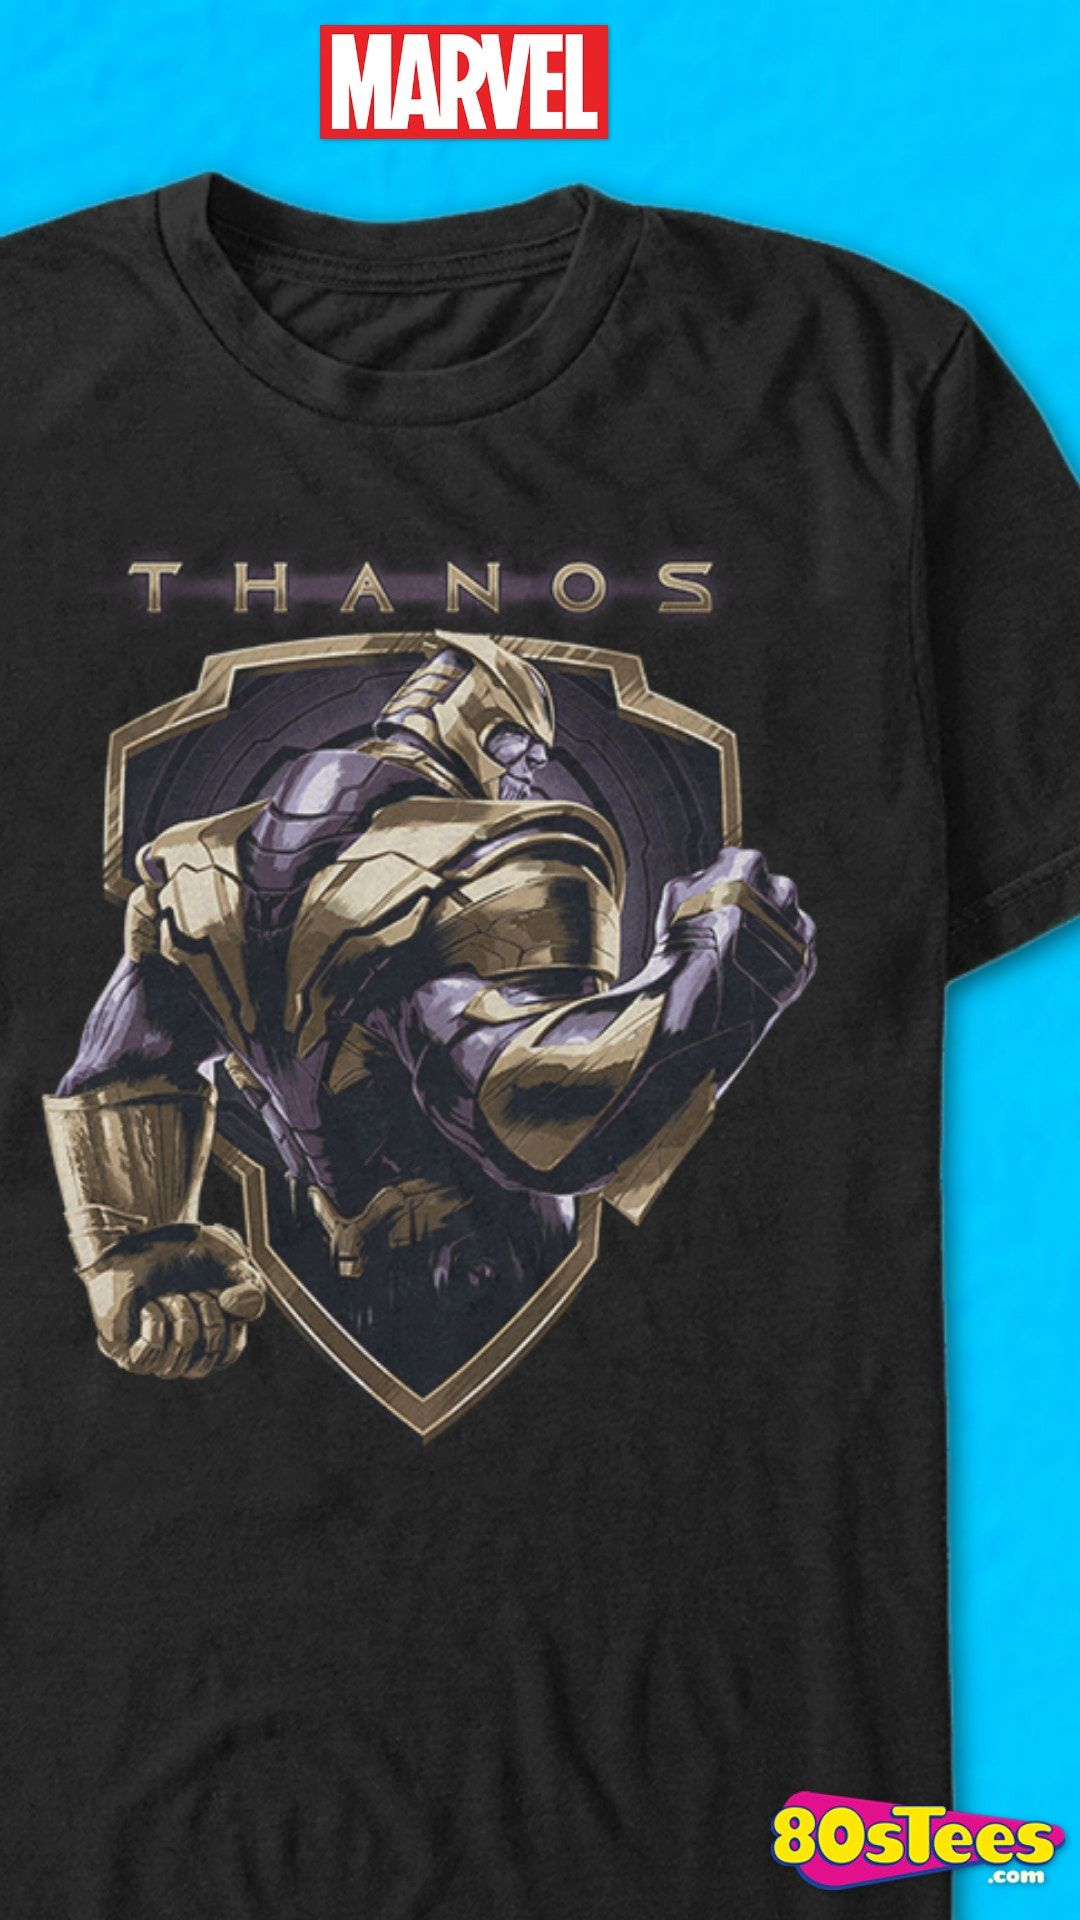 78511e78 This Avengers: Endgame t-shirt features an image of the mad titan Thanos.